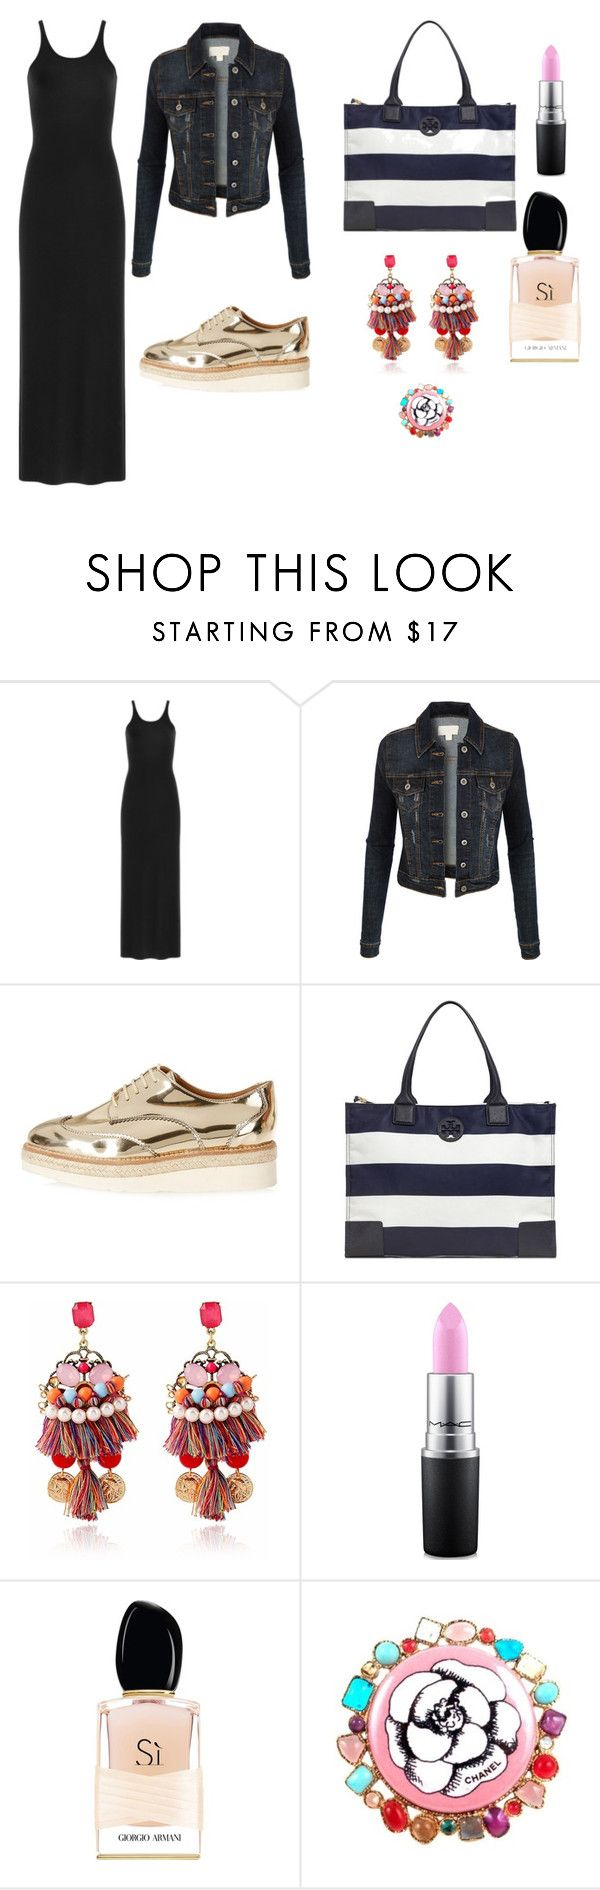 """""""mix and match"""" by janka-dzurillova on Polyvore featuring T By Alexander Wang, LE3NO, River Island, Tory Burch, MAC Cosmetics, Giorgio Armani and Chanel"""